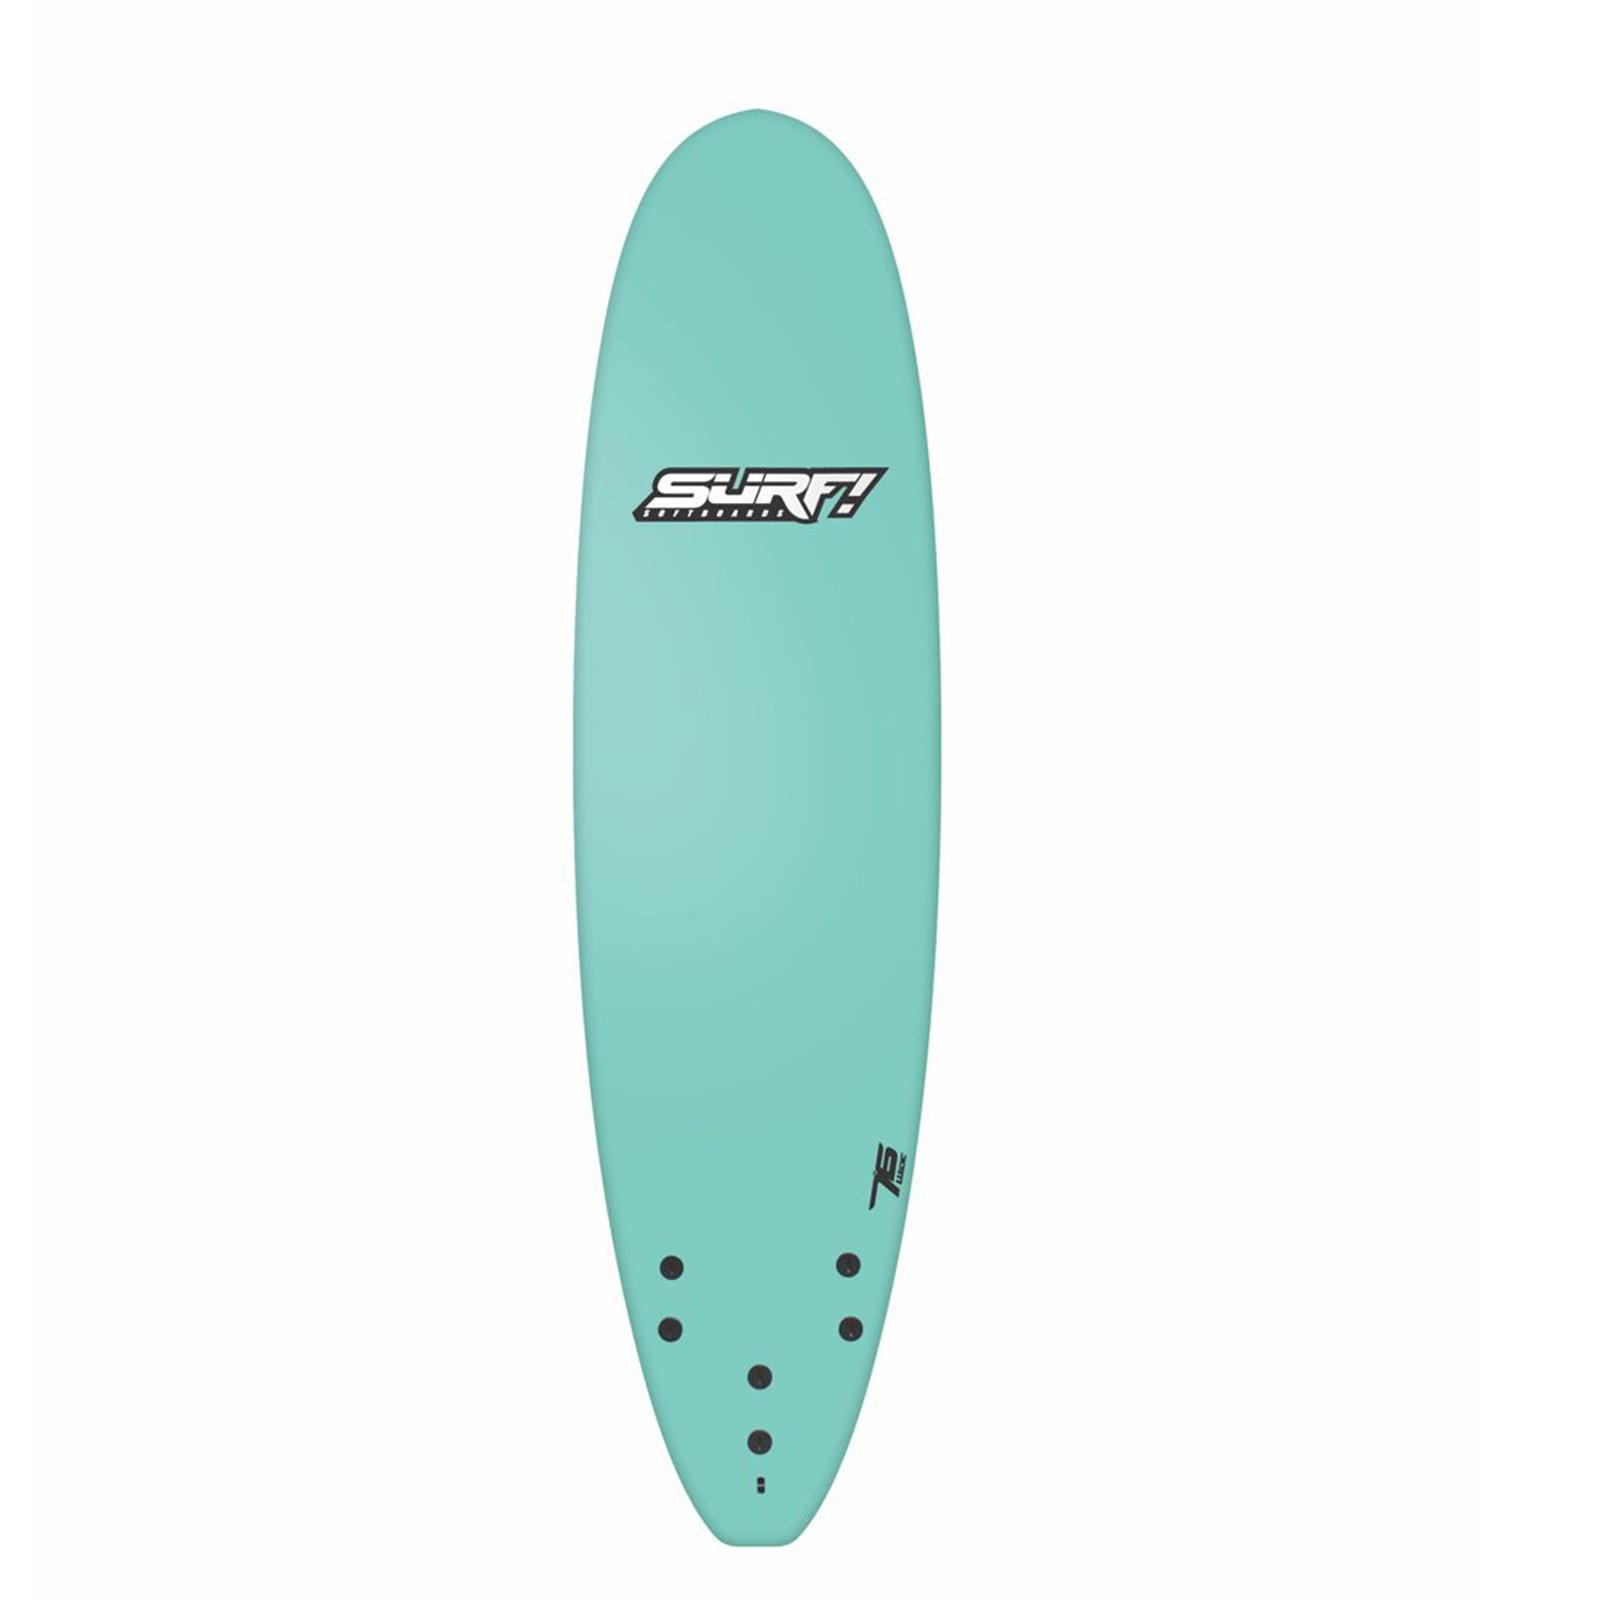 Surfboard BUGZ SURF! Softboard 7.6 Wide Body